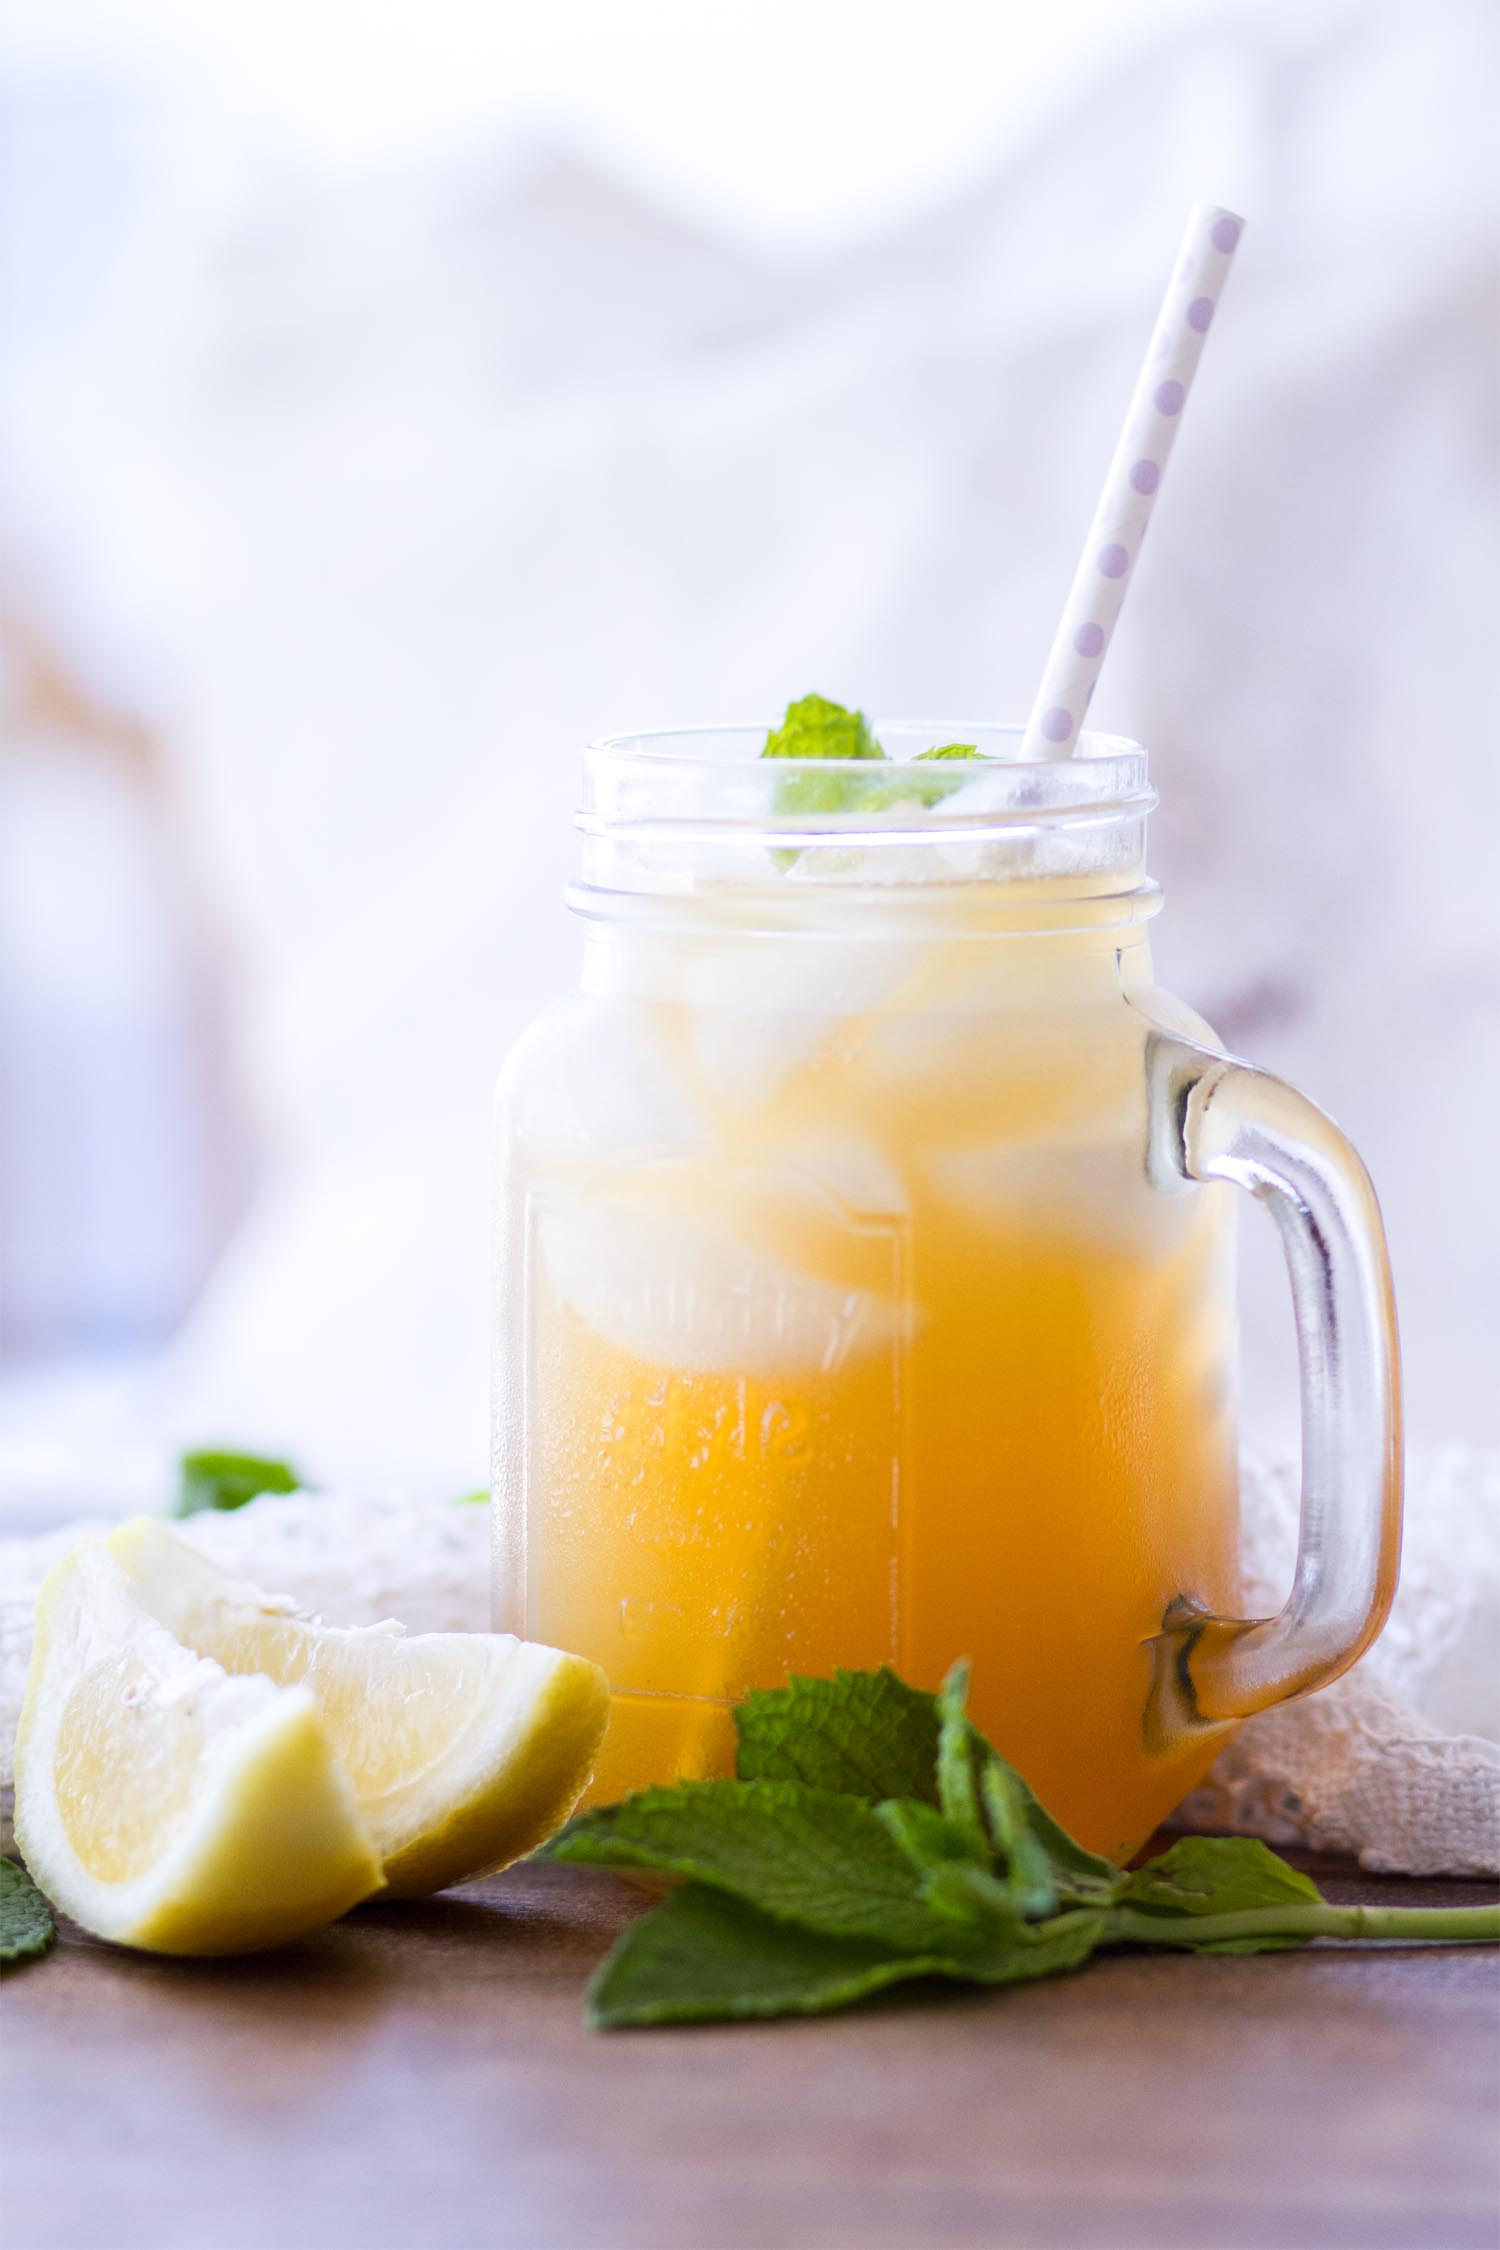 A mason jar glass filled with iced tea, ice cubes, a sprig of mint and paper straw on a wooden background with lemon slices and mint next to it.